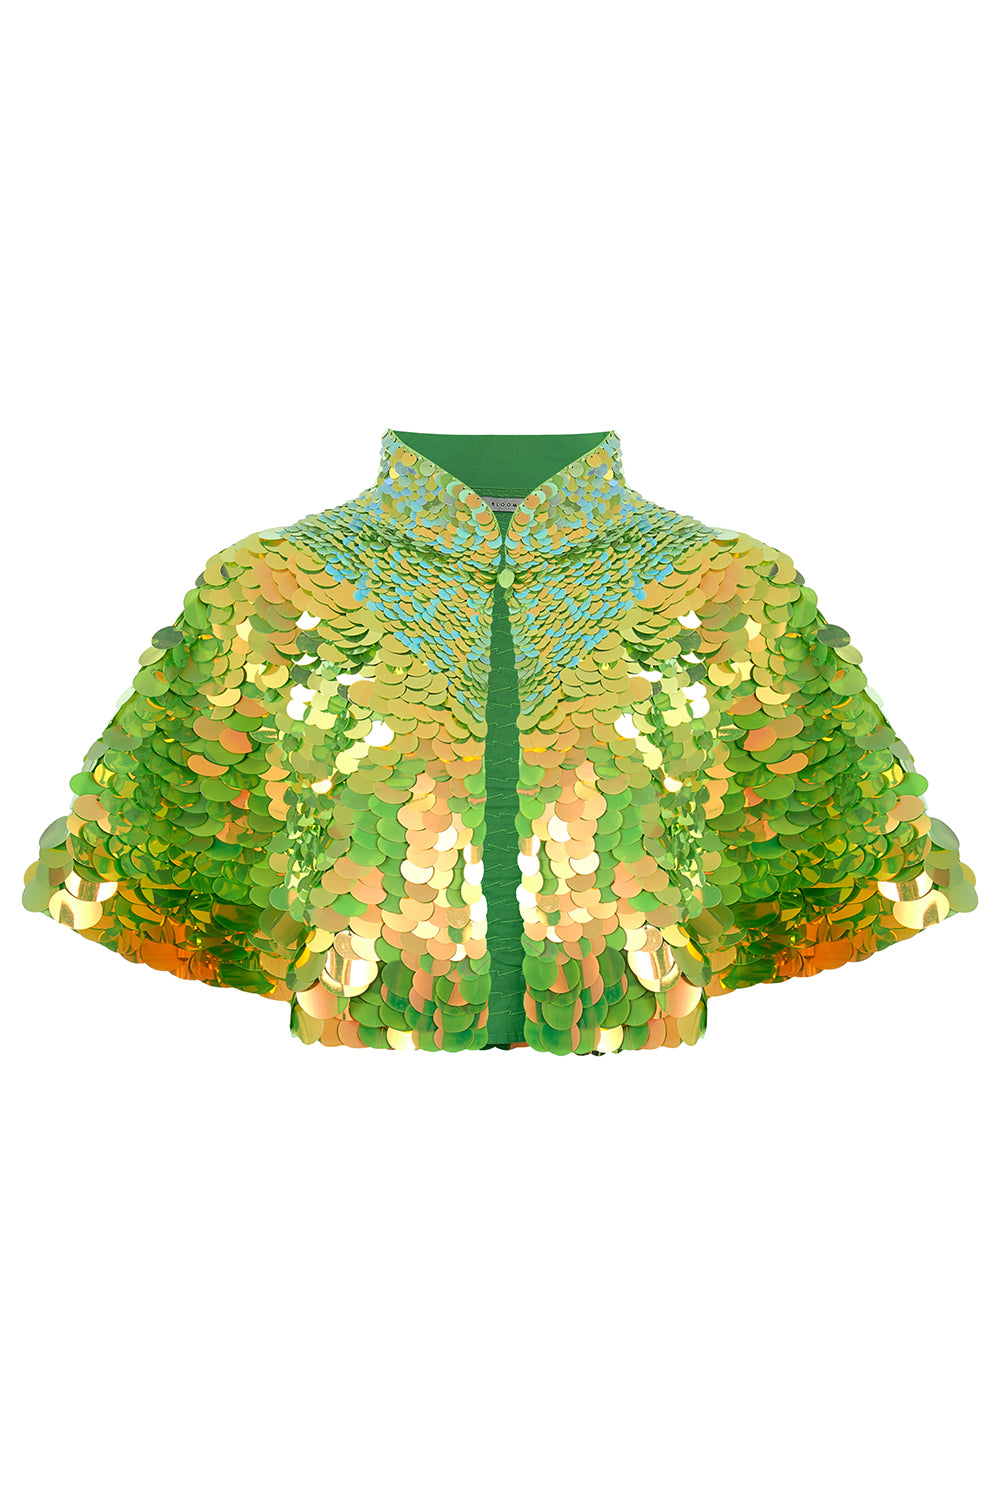 rosa bloom angelica lime green sequin festival party cape